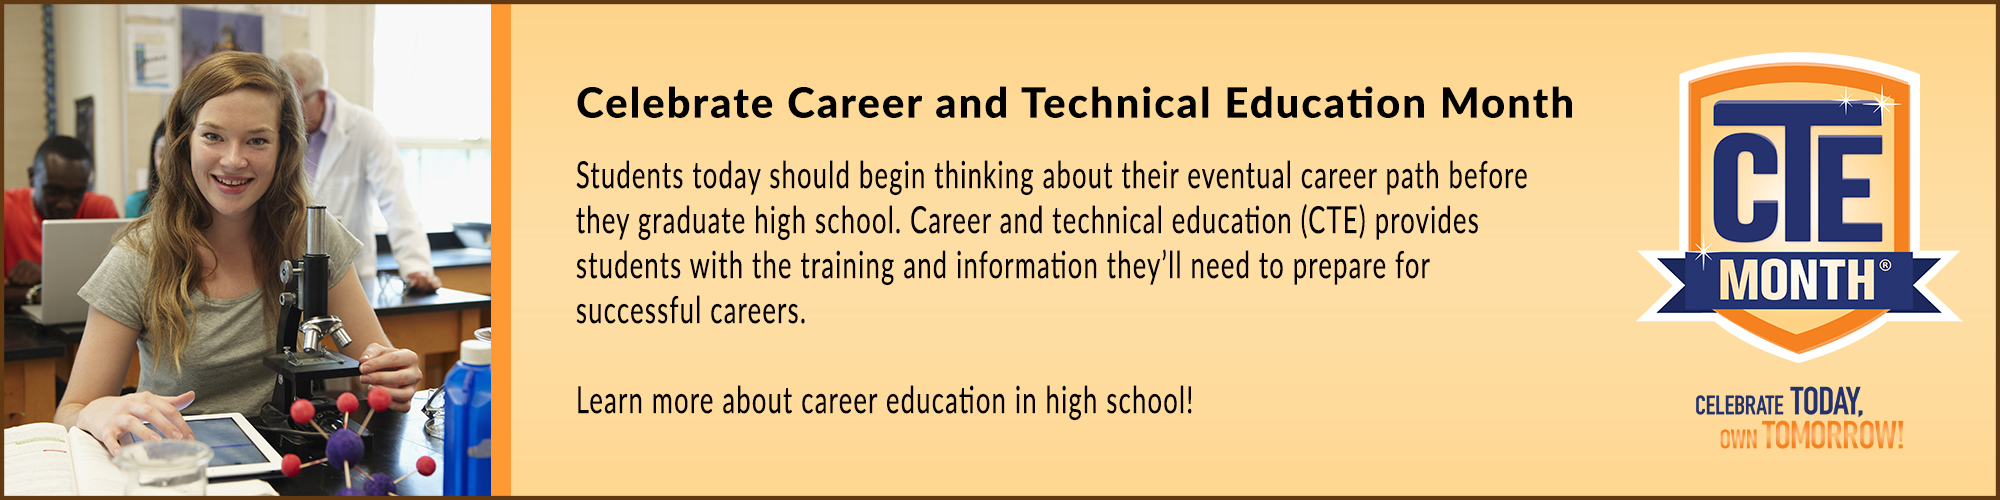 Celebrate Career and Technical Education Month